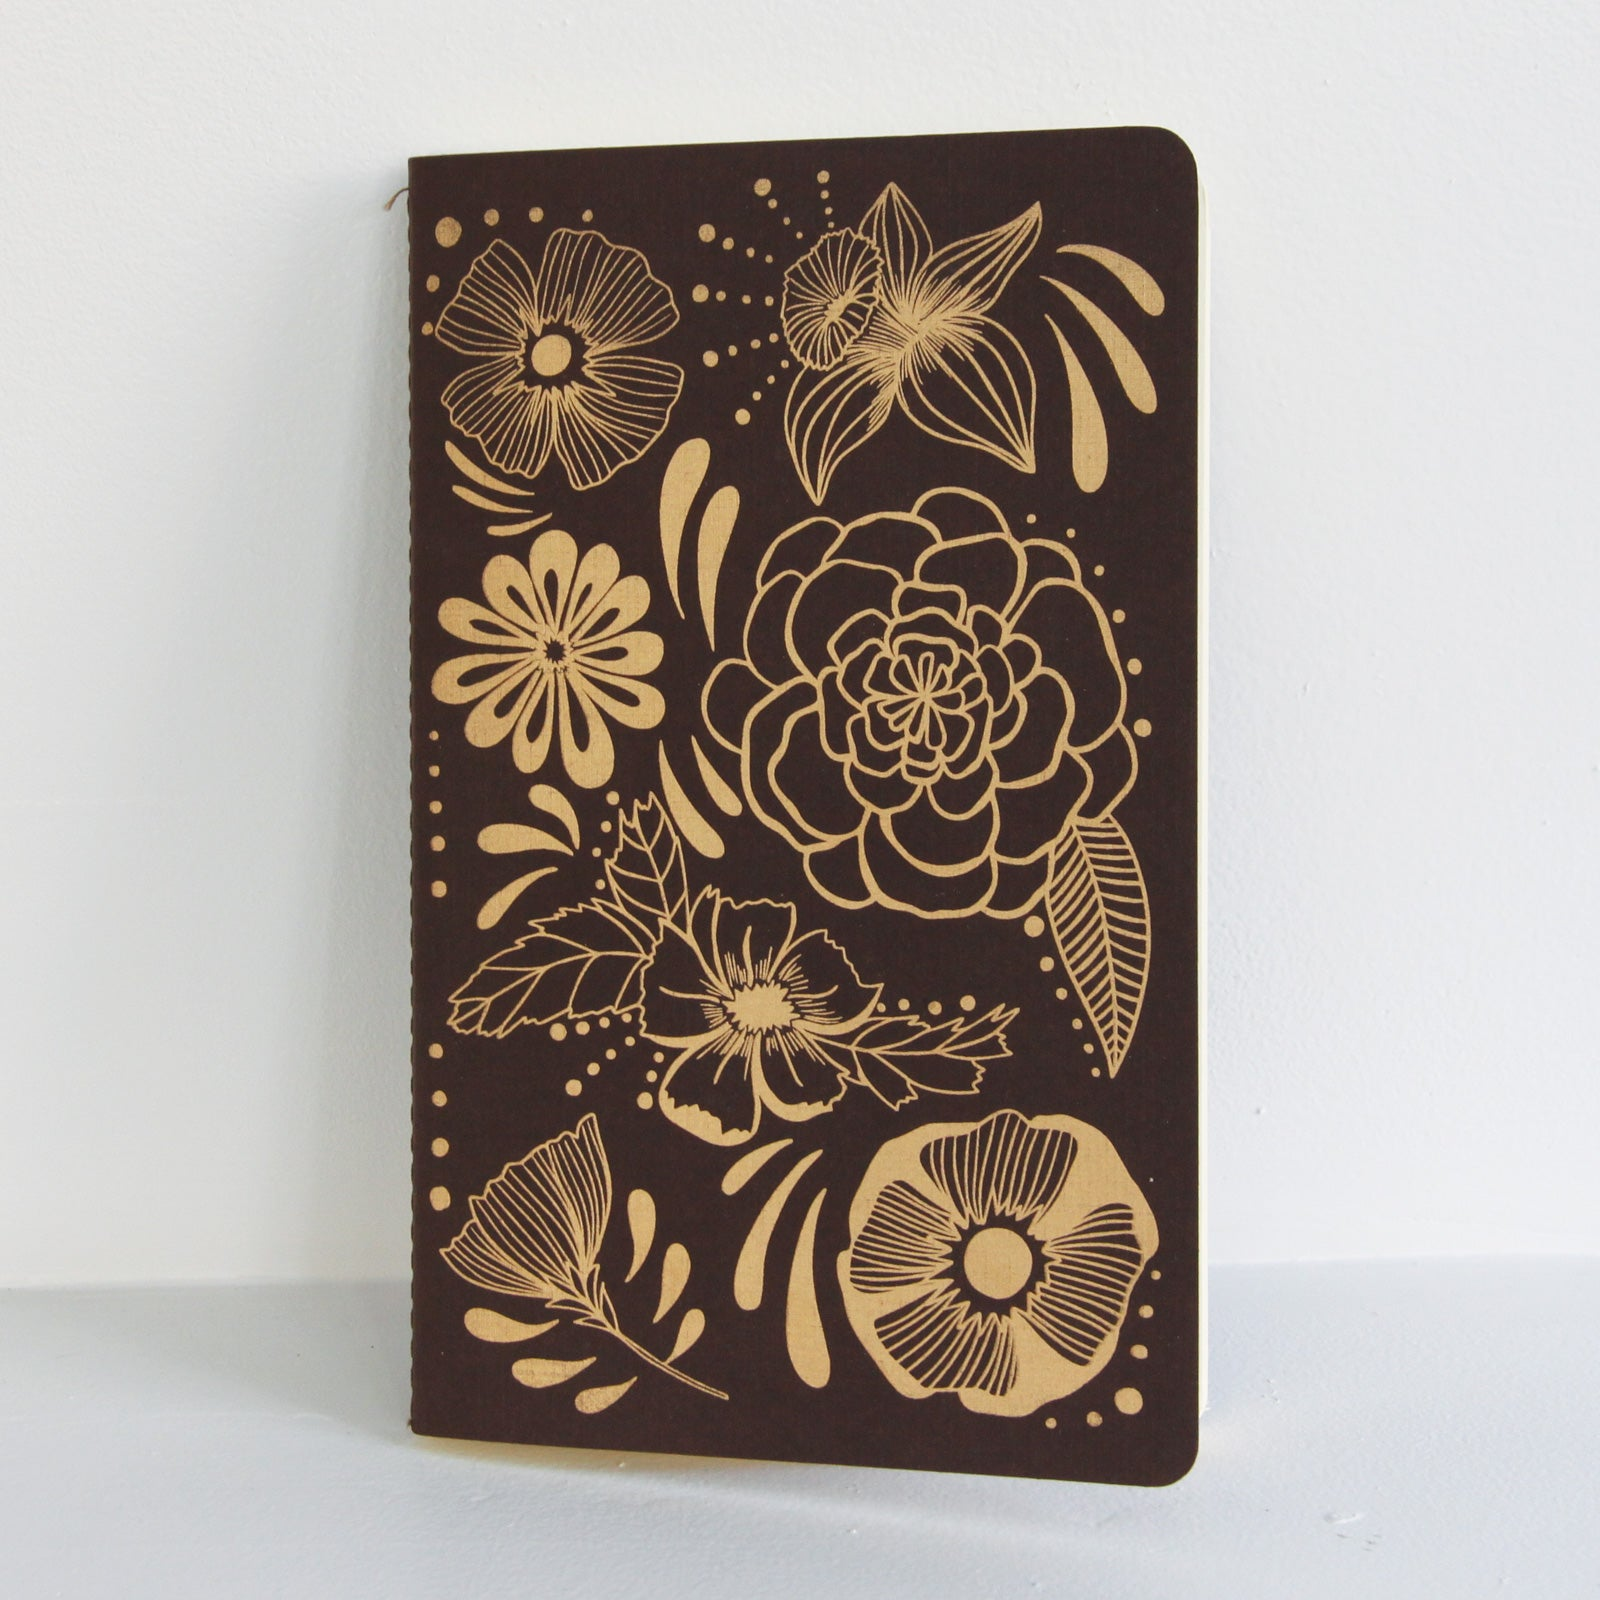 Flower Power Notebook - Sustain - Gallery and Workspace | Art, Prints, Zines, Workshops | Chicago, IL